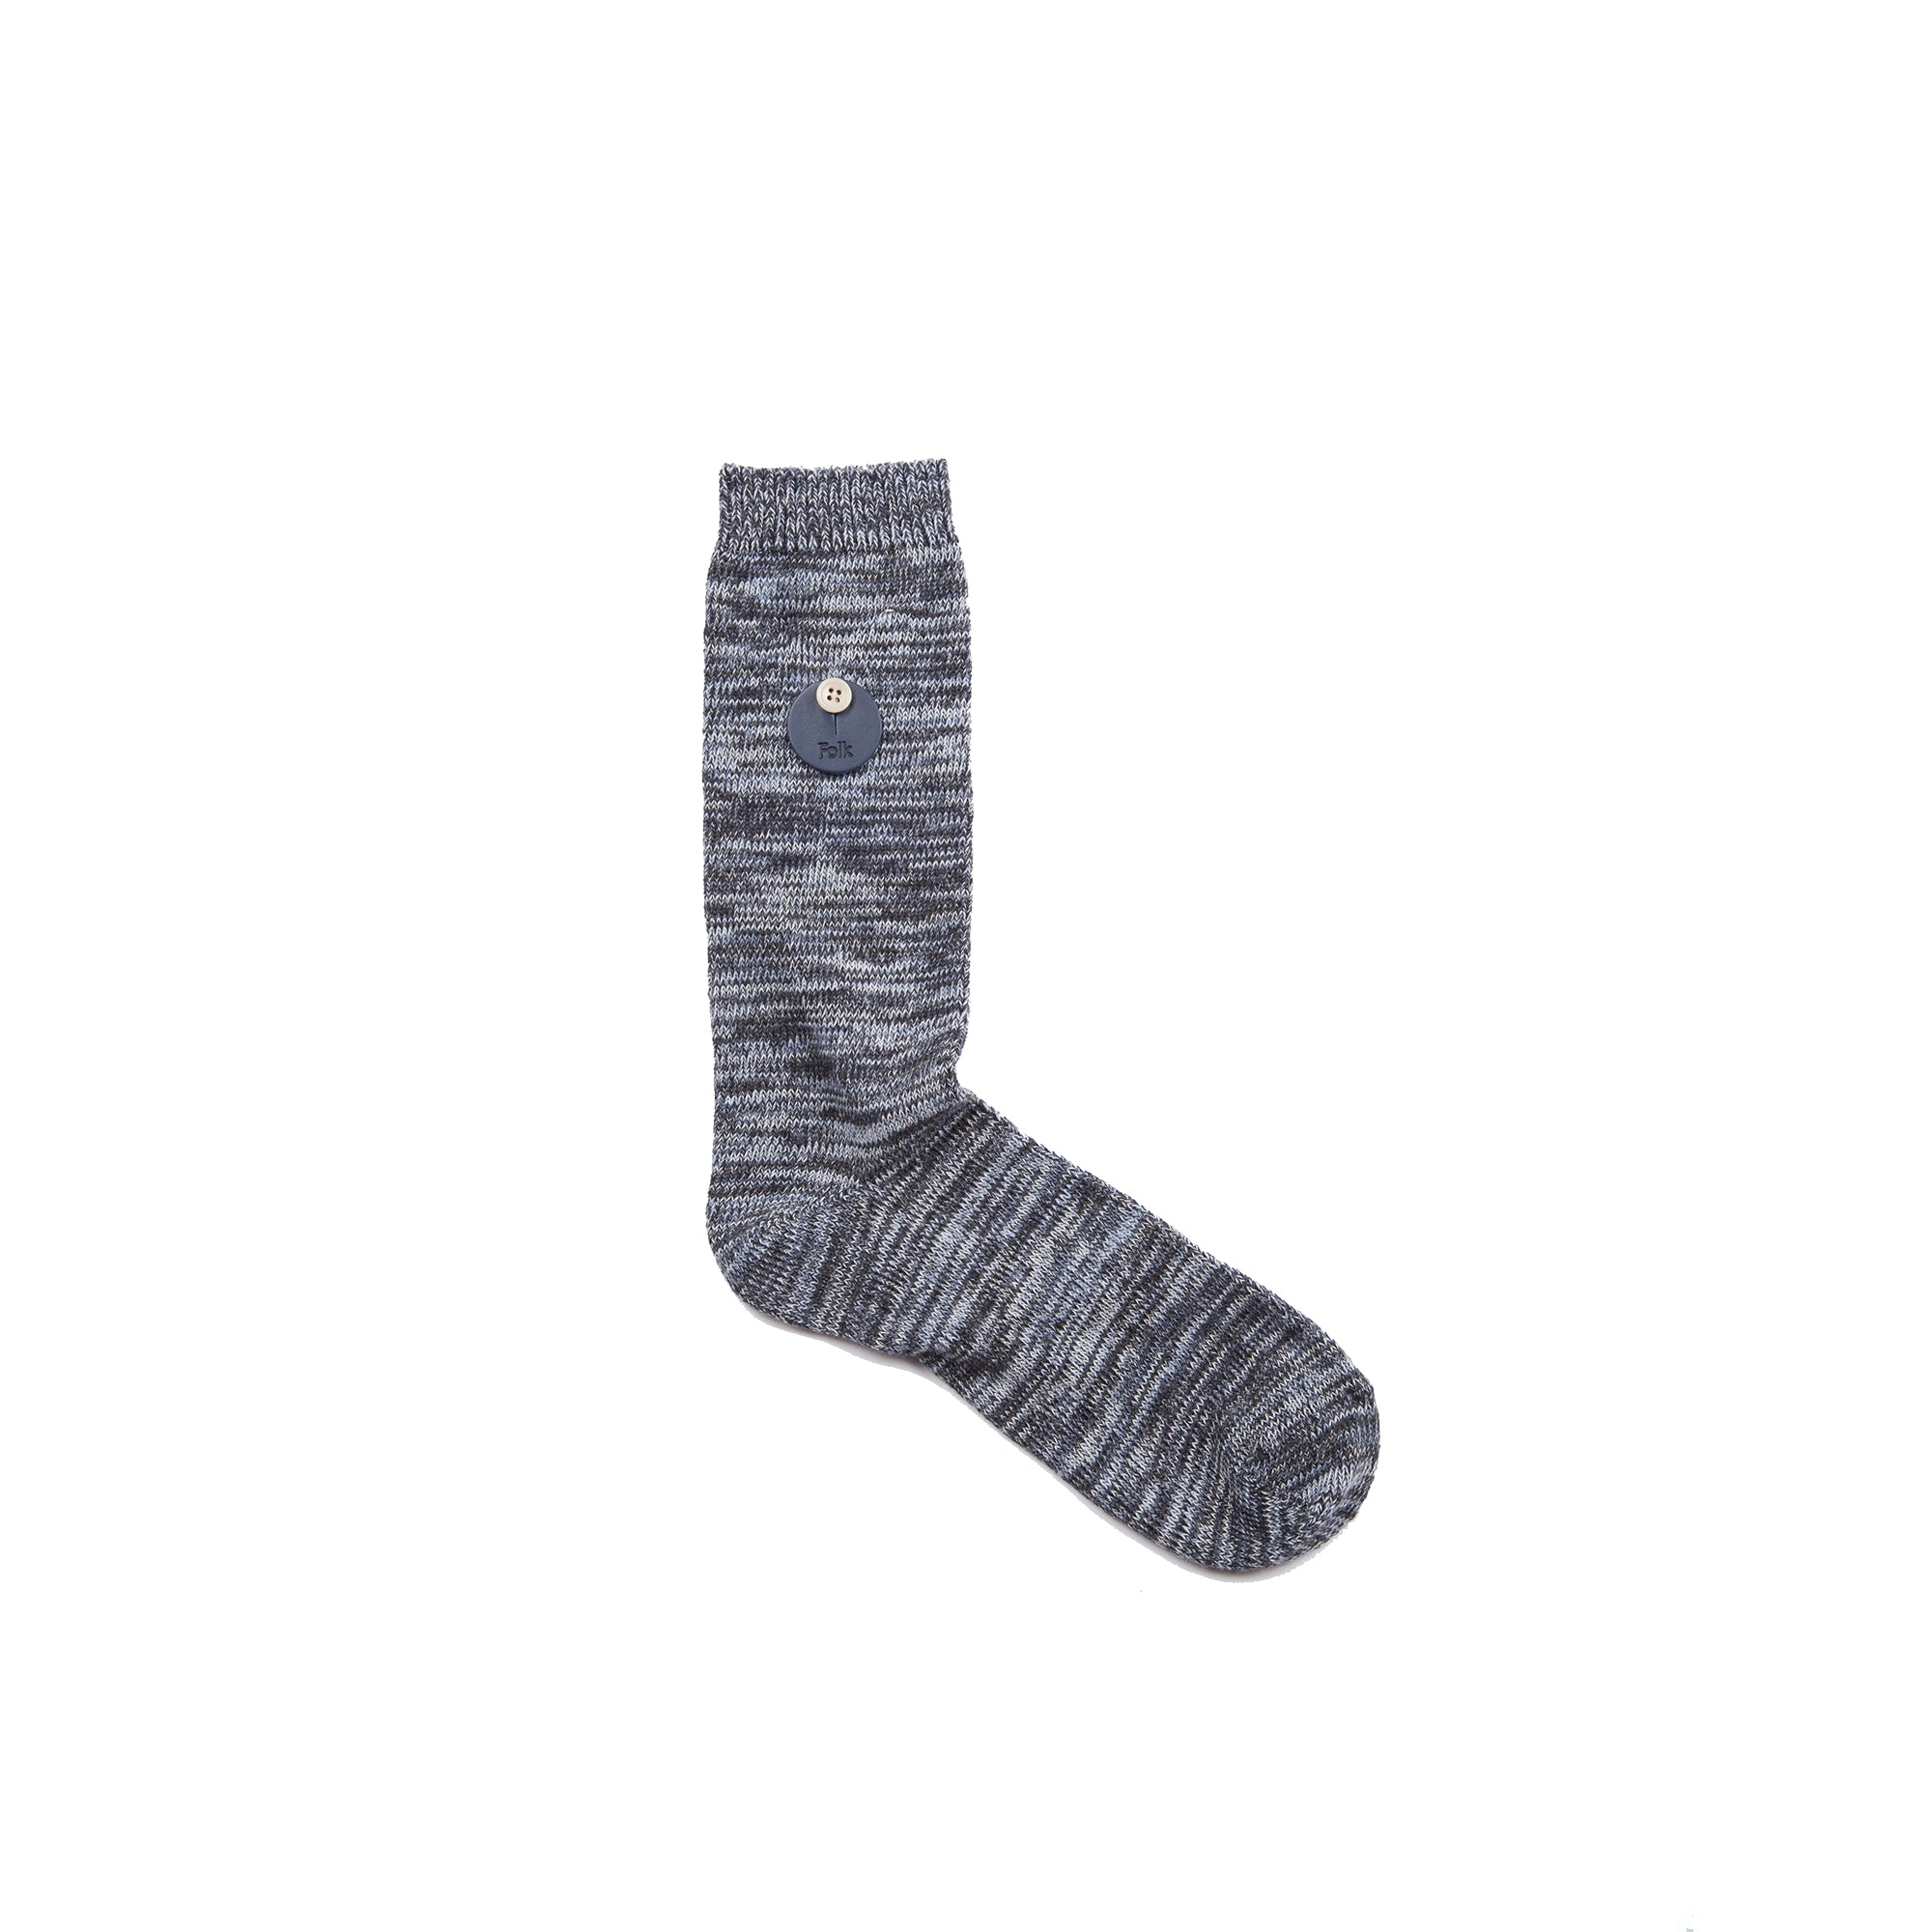 Melange Socks - Blue Charcoal Melange